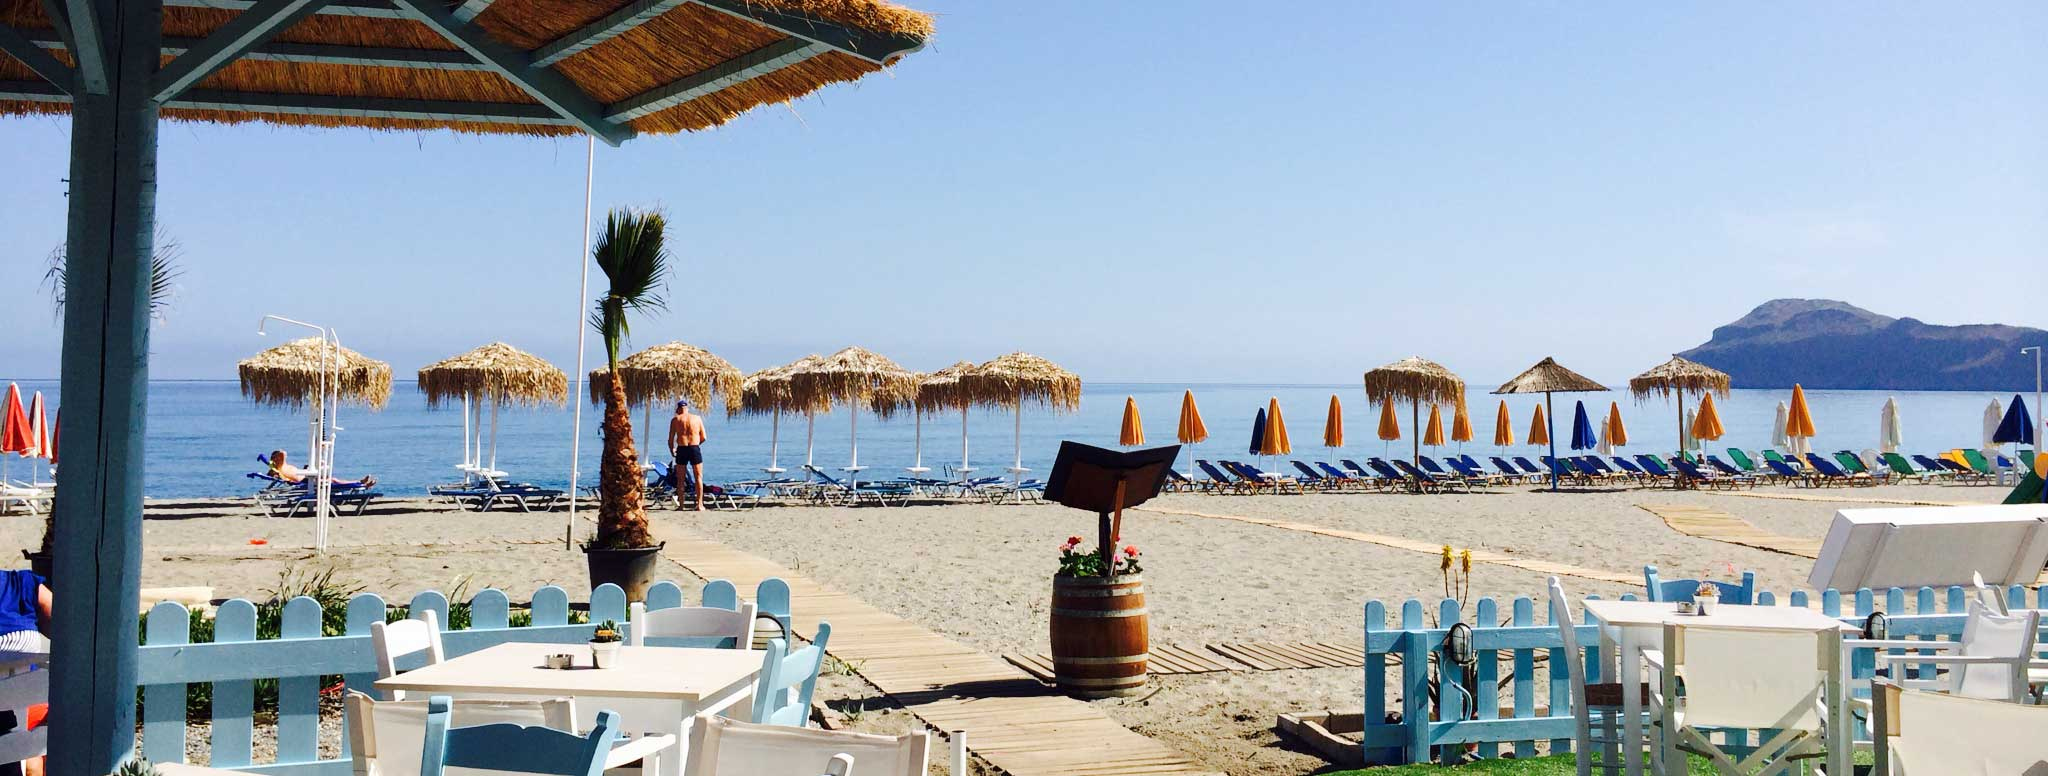 Sonio Beach Hotel - Sonio Beach-Restaurant at beach front